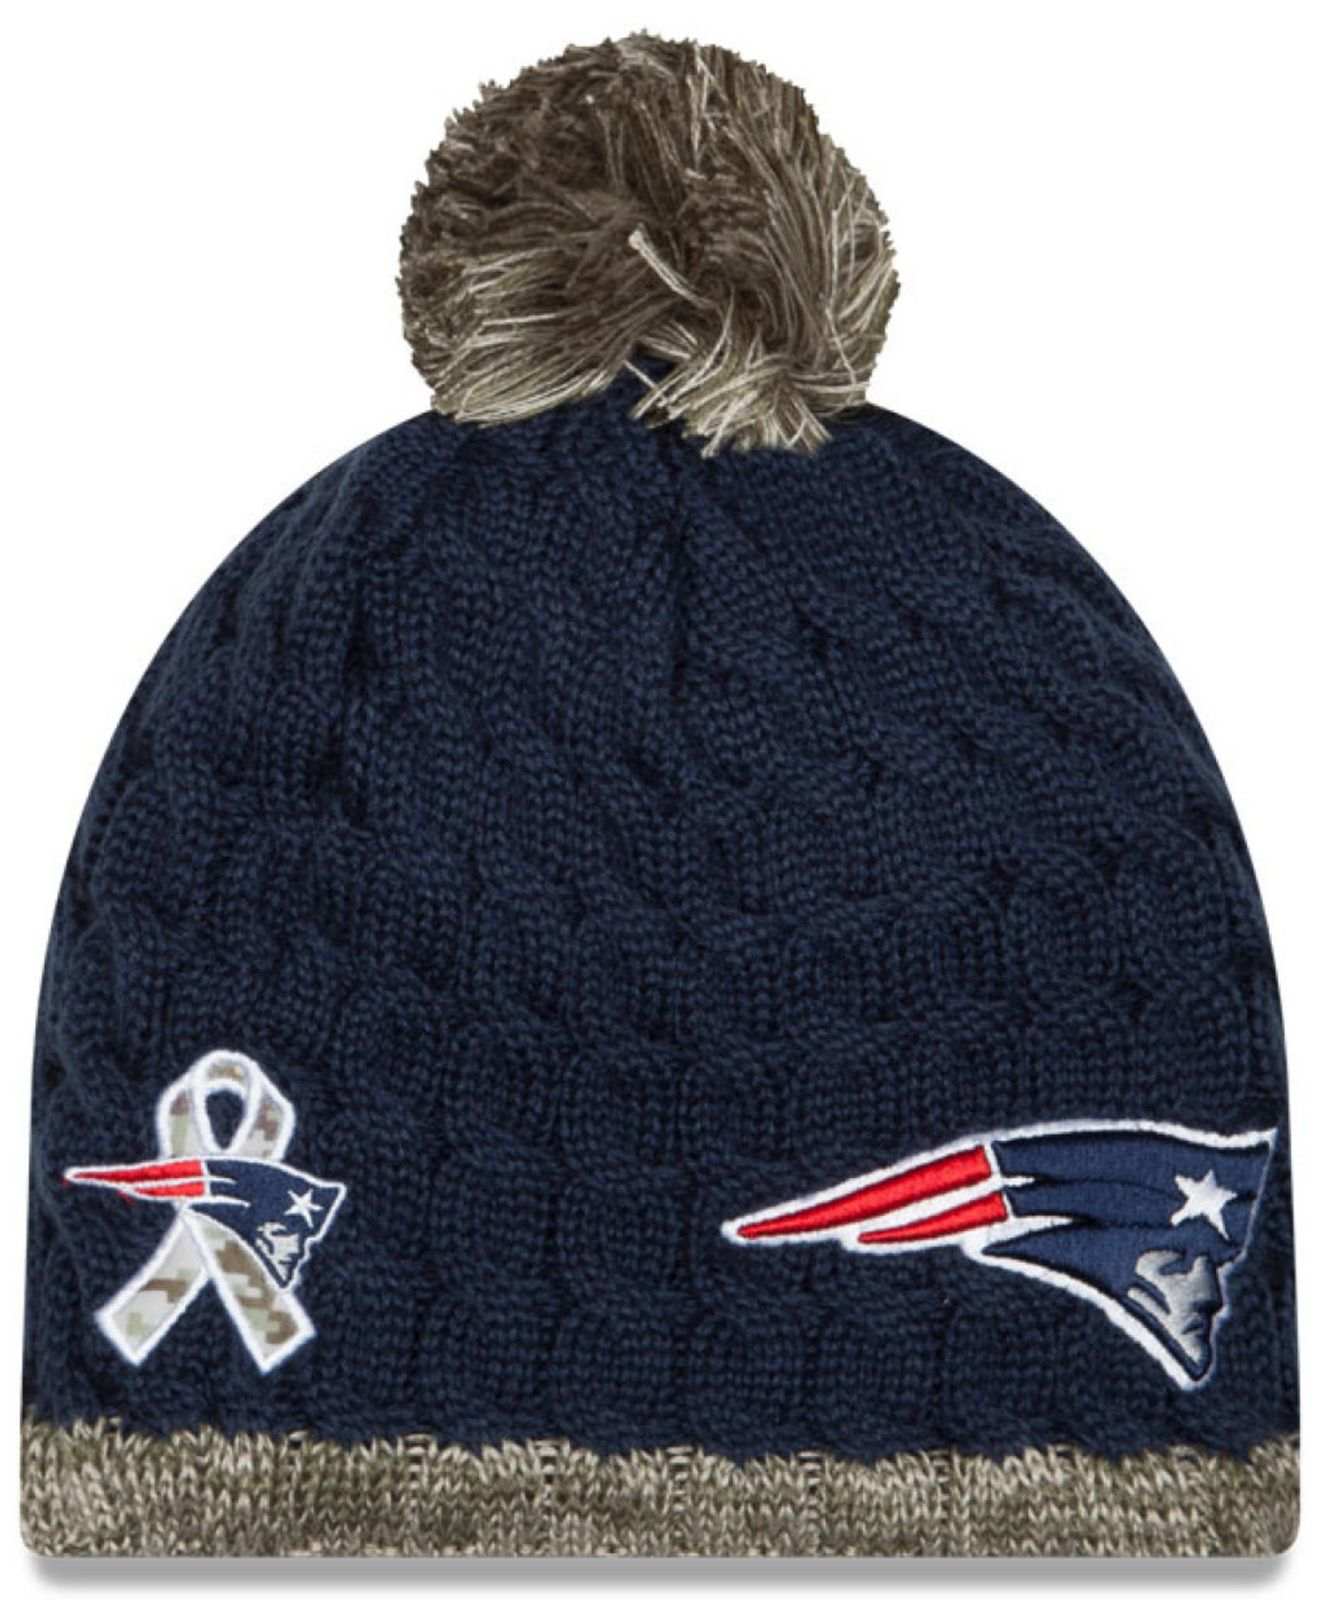 Lyst - KTZ Women s New England Patriots Salute To Service Knit Hat ... 60f8f2514ba